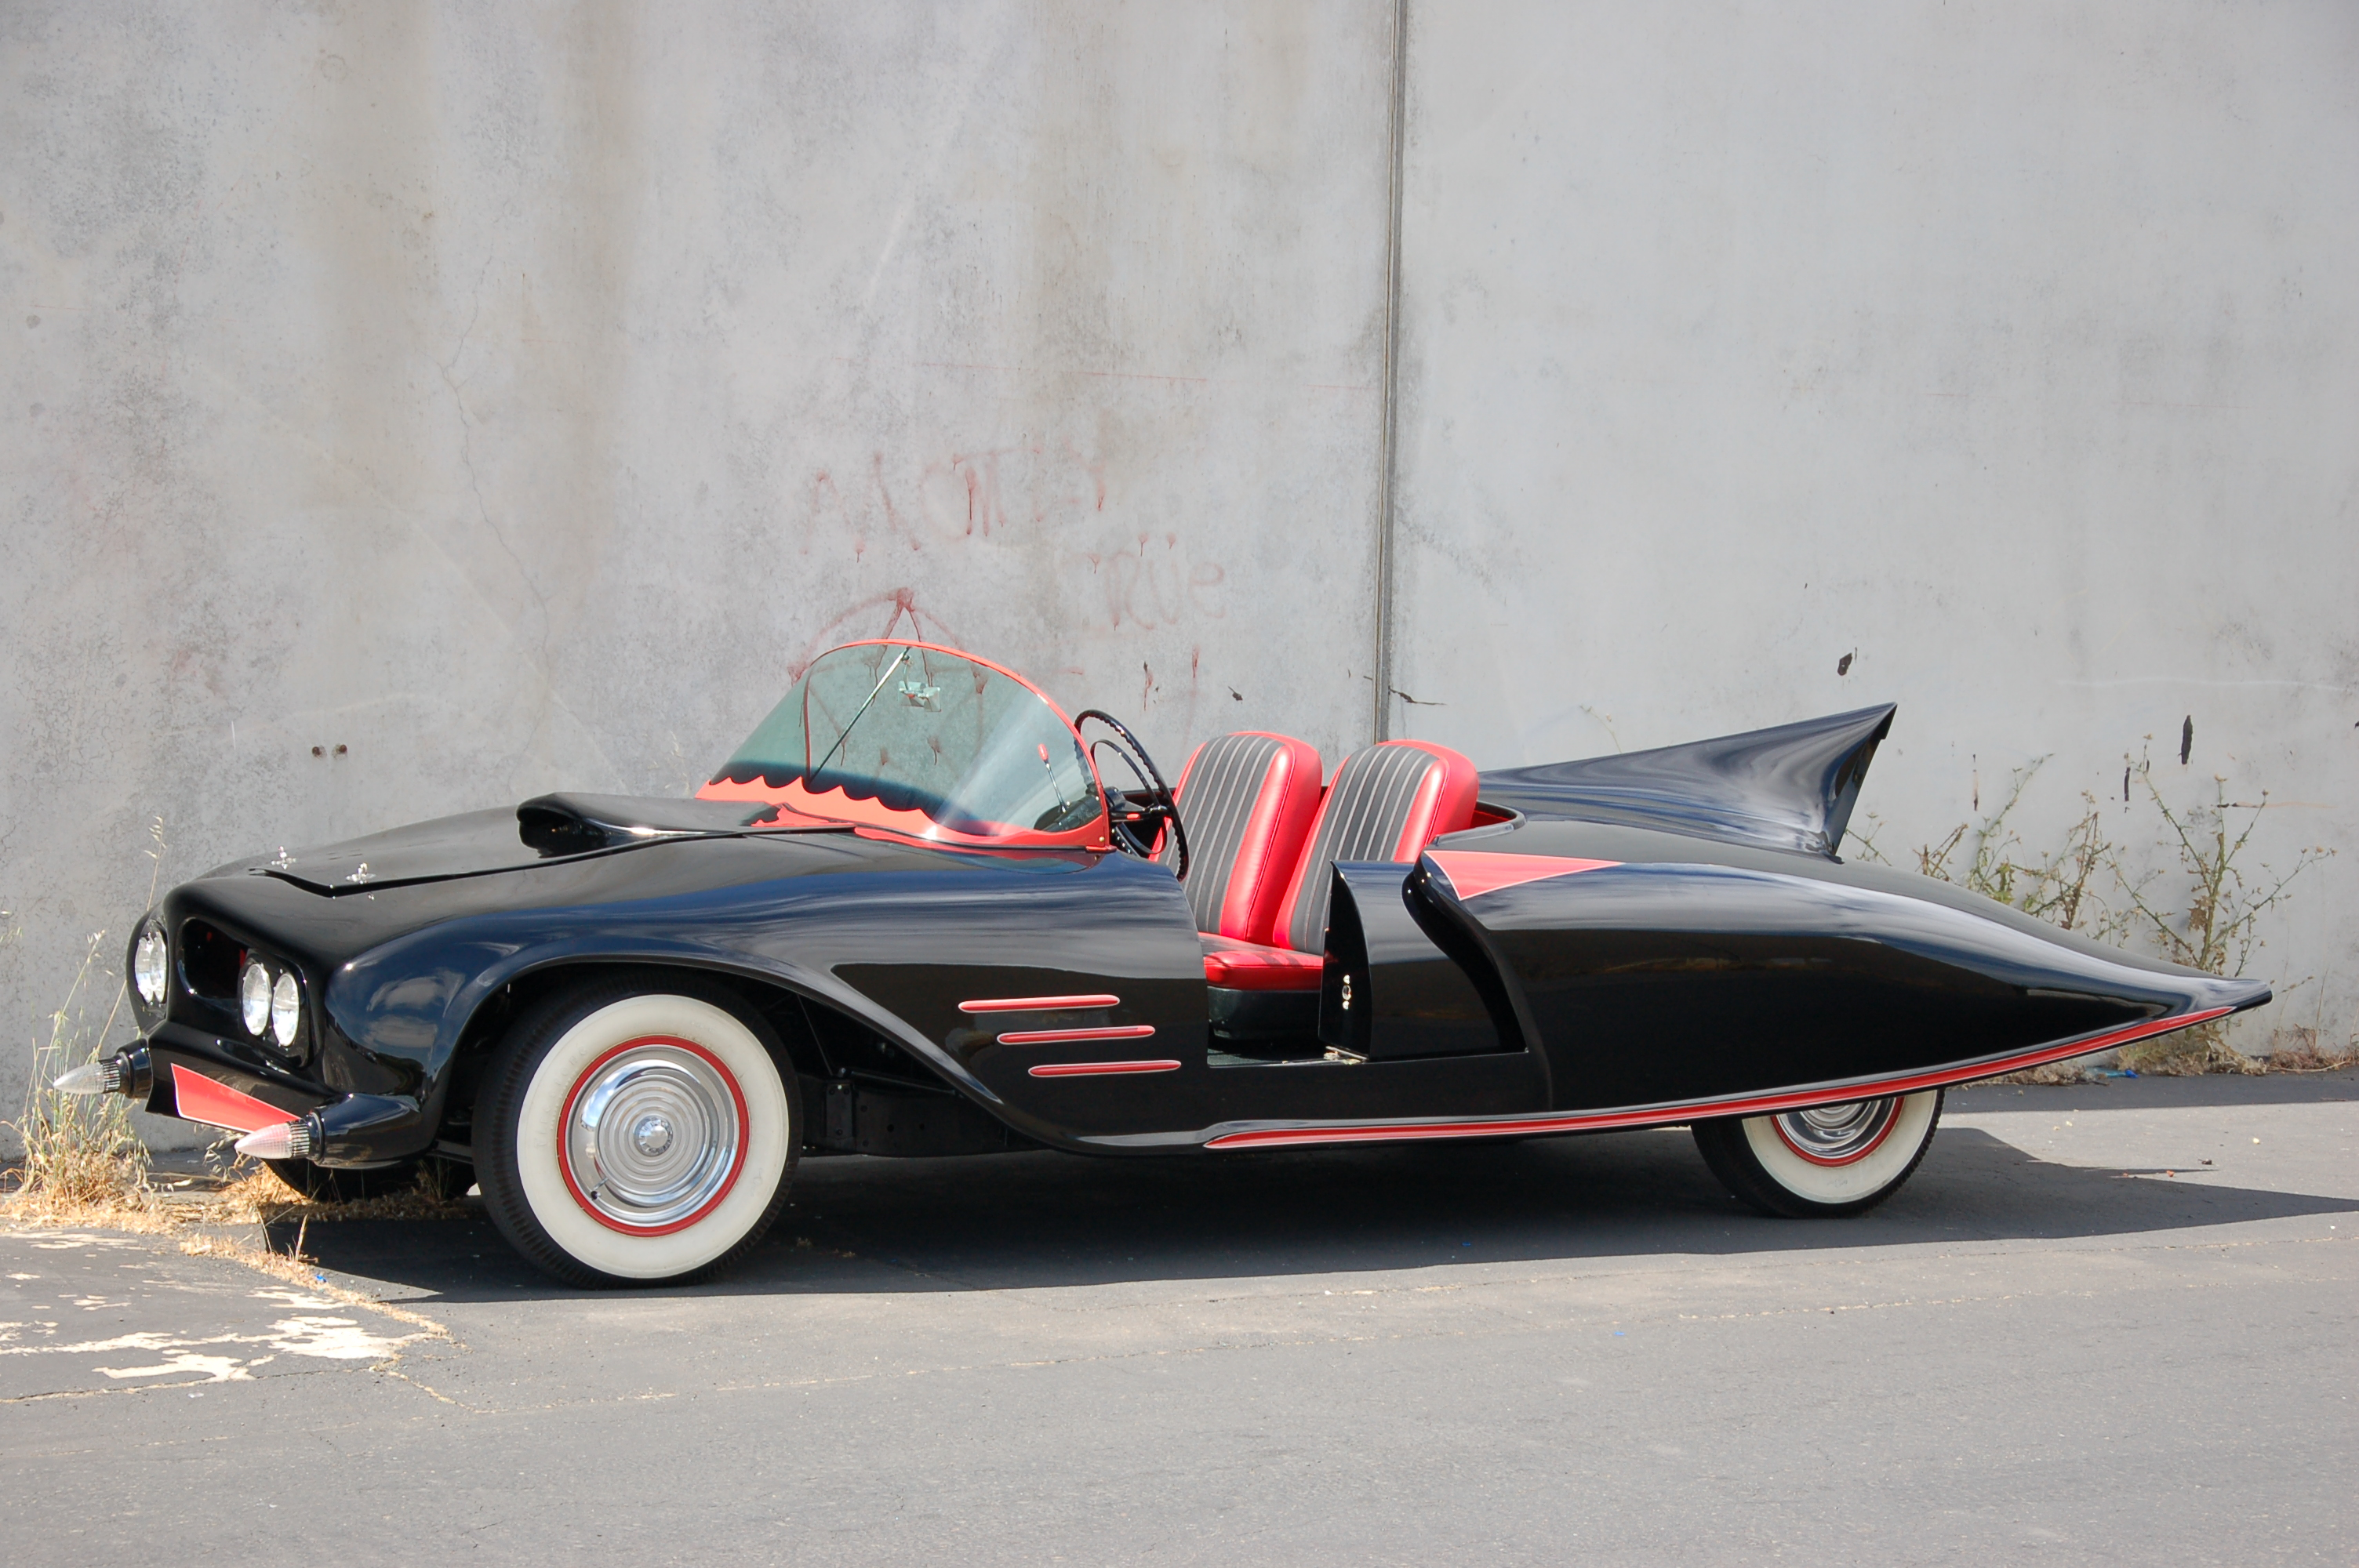 Batmobile among vintage autos on display at NorCal KnockOut